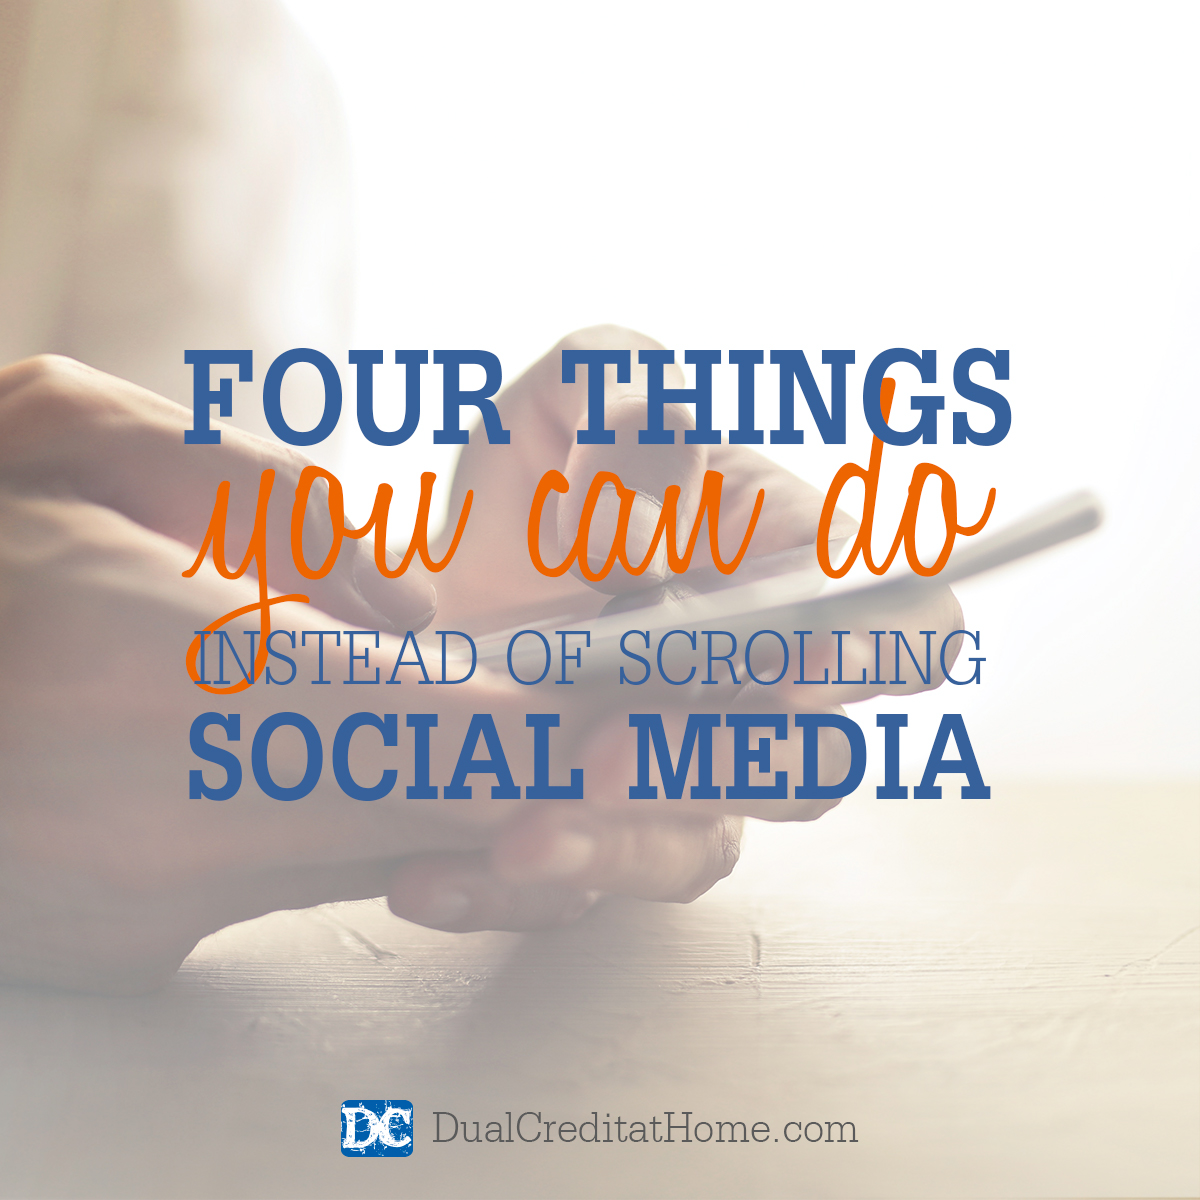 Four Things You Can Do Instead of Scrolling Social Media